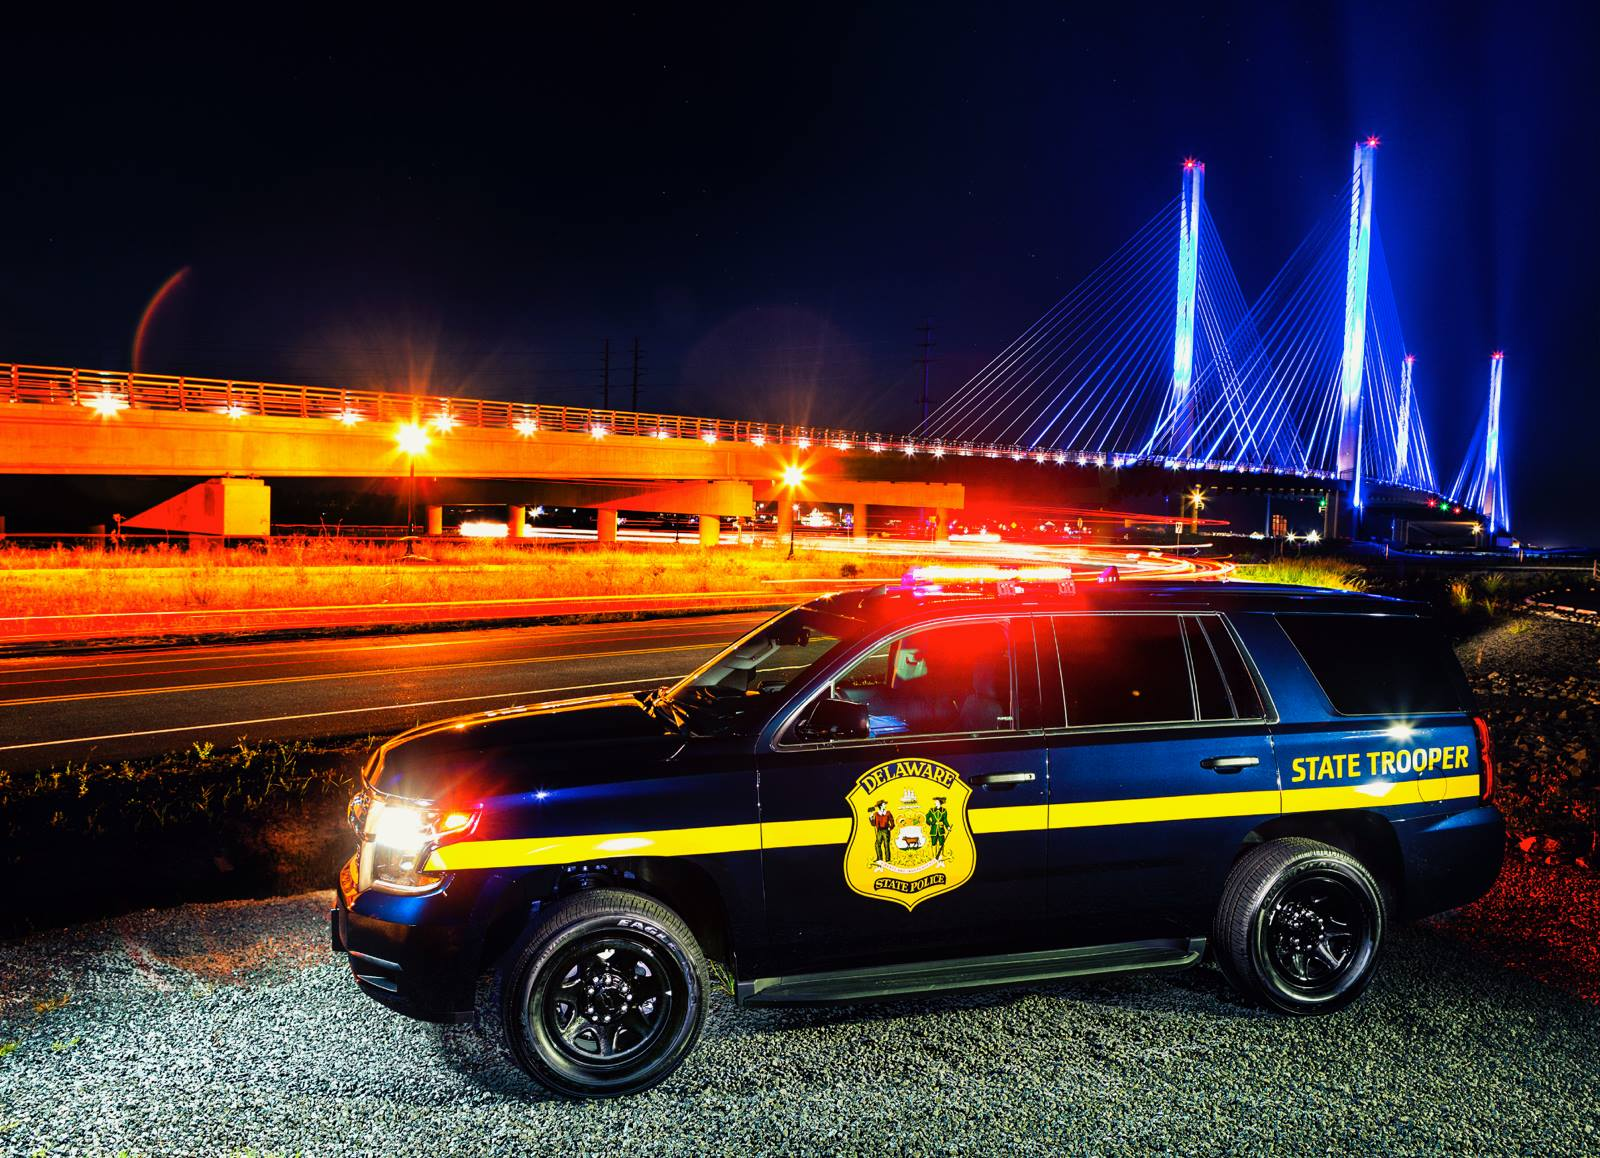 Delaware State Police. (American Association of State Troopers|Facebook)